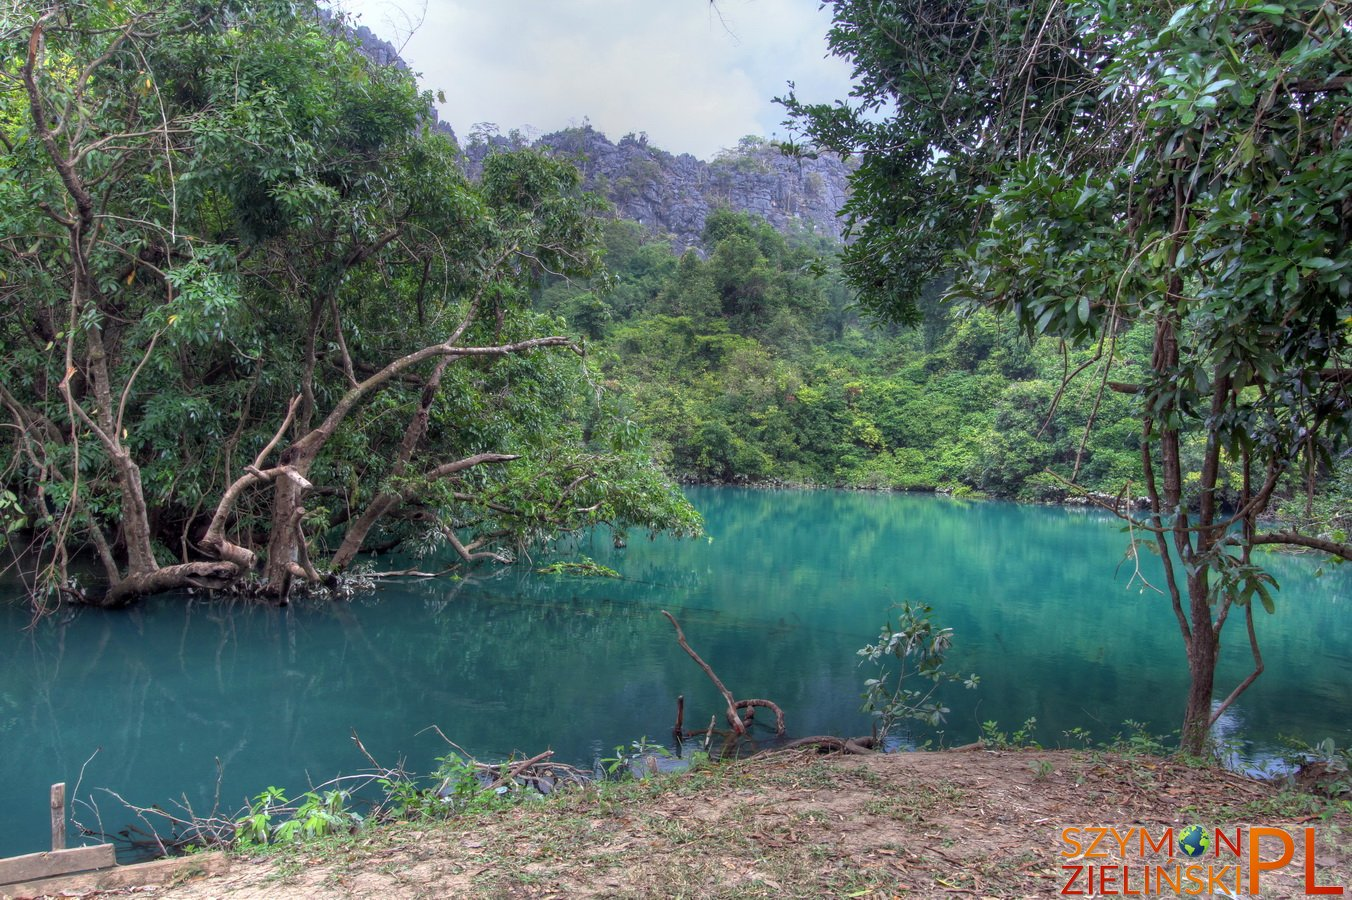 Tha Khaek Loop, Laos - Day 4 - Khoung Kong Leng lake (Evening Gong lake)